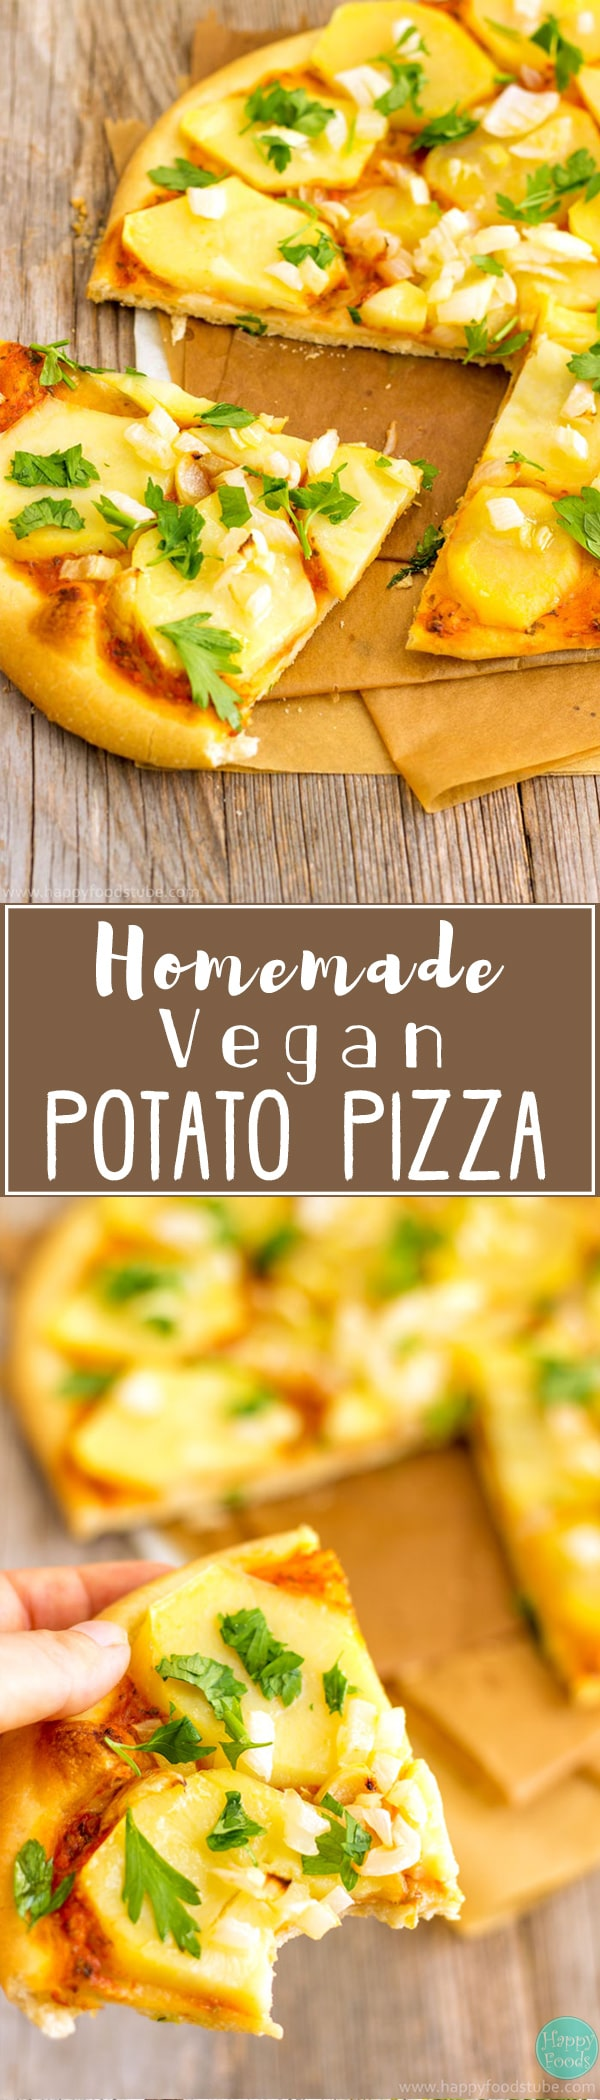 This Homemade Vegan Potato Pizza is loaded with simple yet flavorful ingredients! Delicious & healthier version of the classic cheesy pizza | happyfoodstube.com